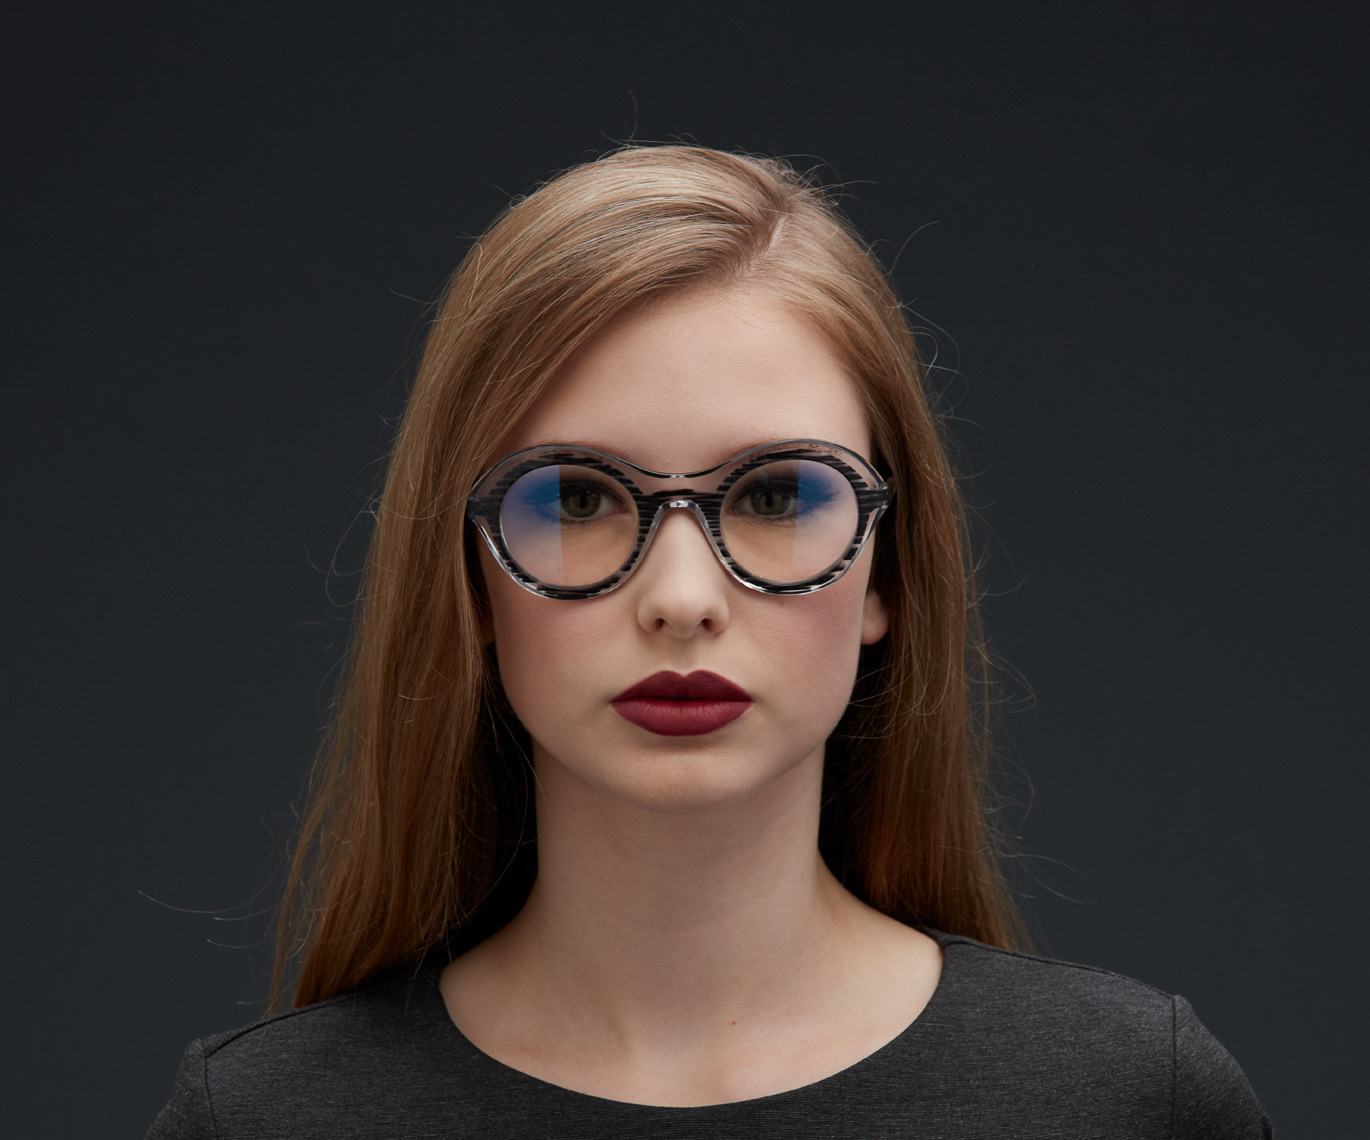 woman looking straight at camera wearing dark patterned lenses